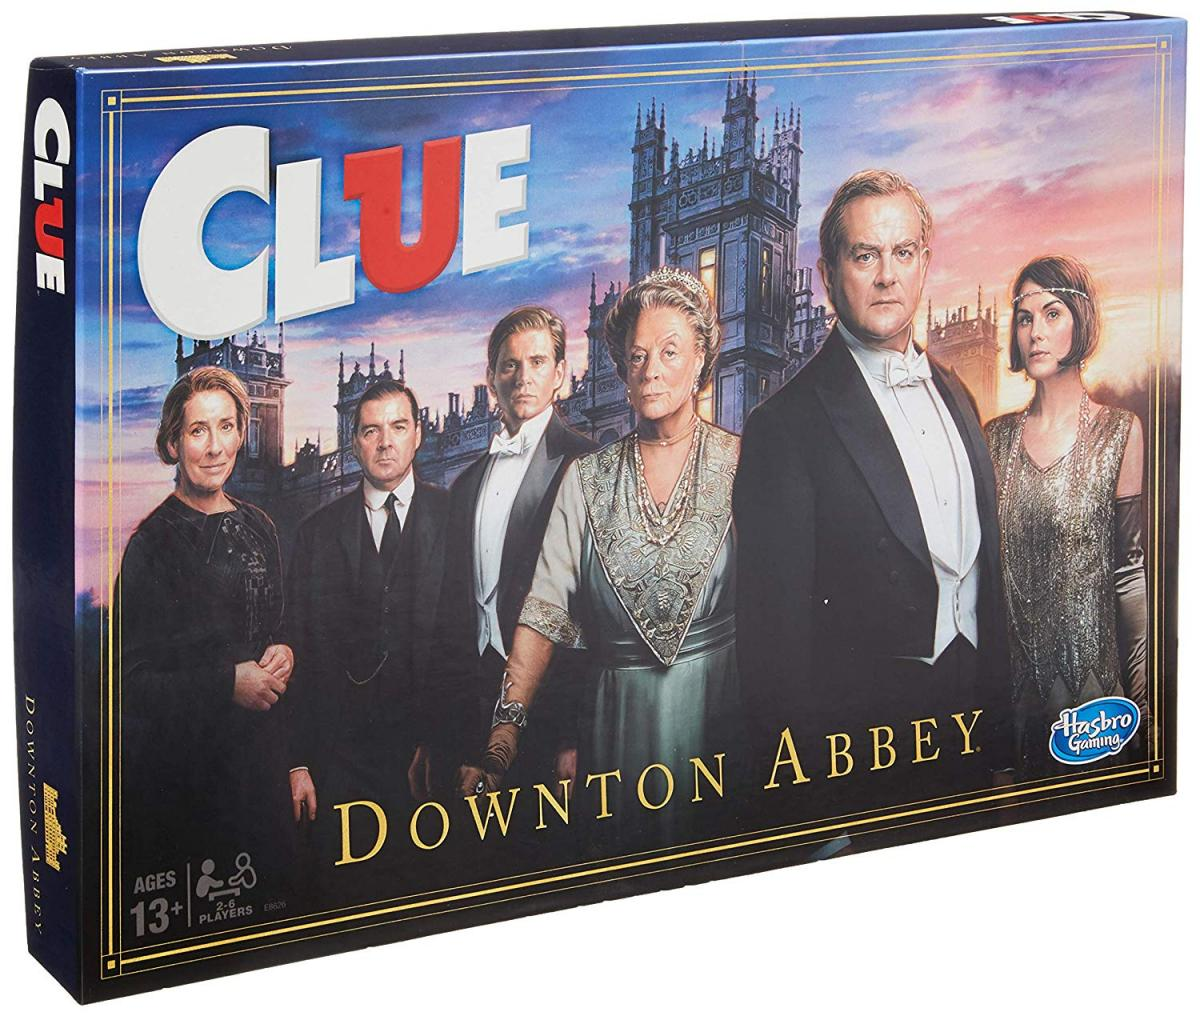 Downton Abbey Clue Board Game - Clue Downton Abbey Edition